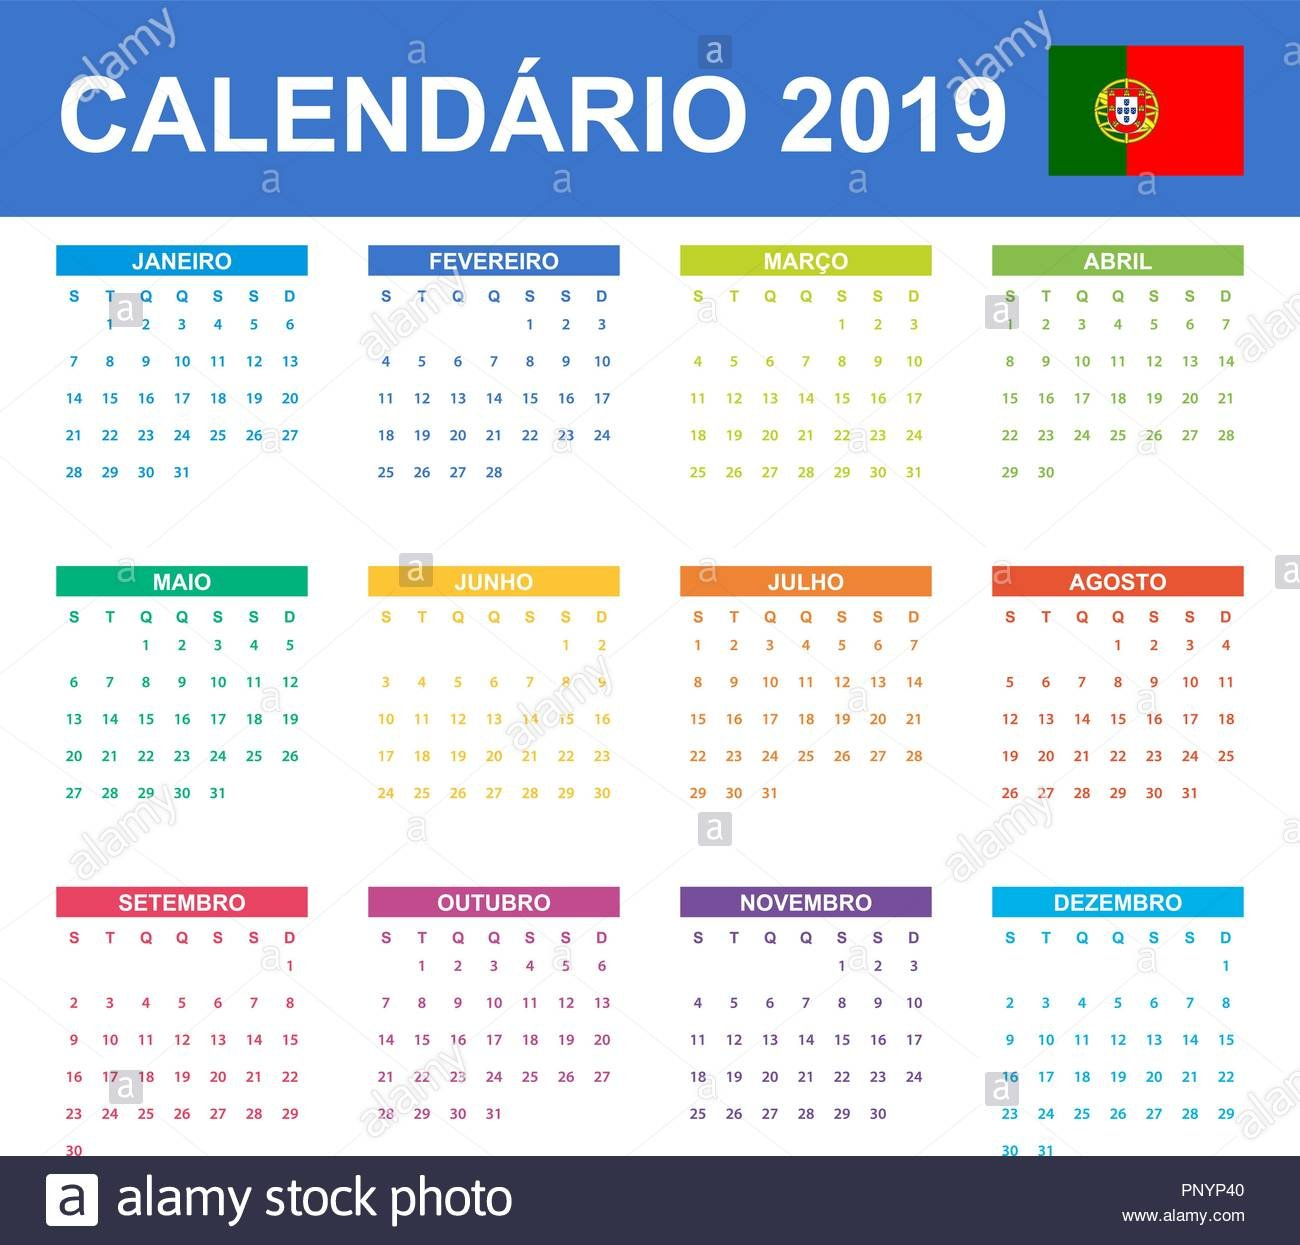 Portuguese Calendar For 2019. Scheduler, Agenda Or Diary Template Calendar Week 40 2019